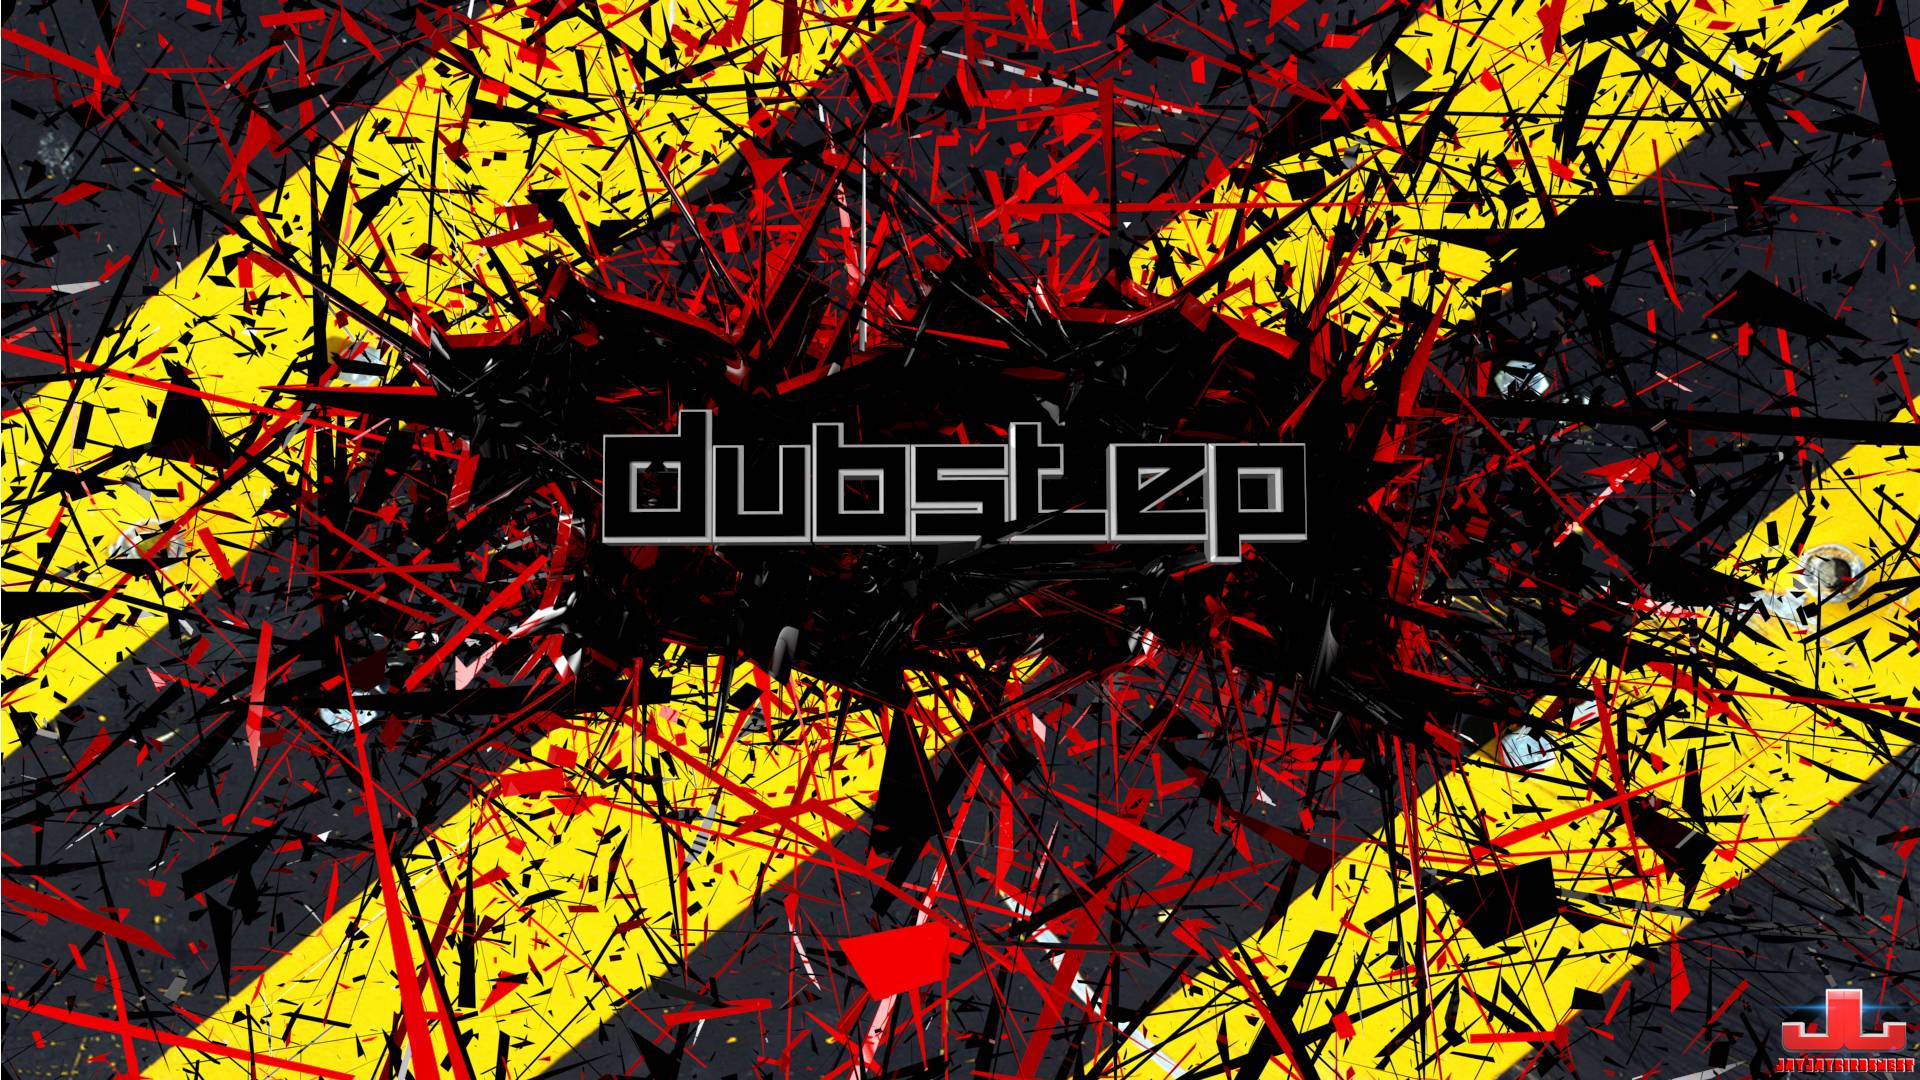 abstract dubstep wallpaper 1080p - photo #20